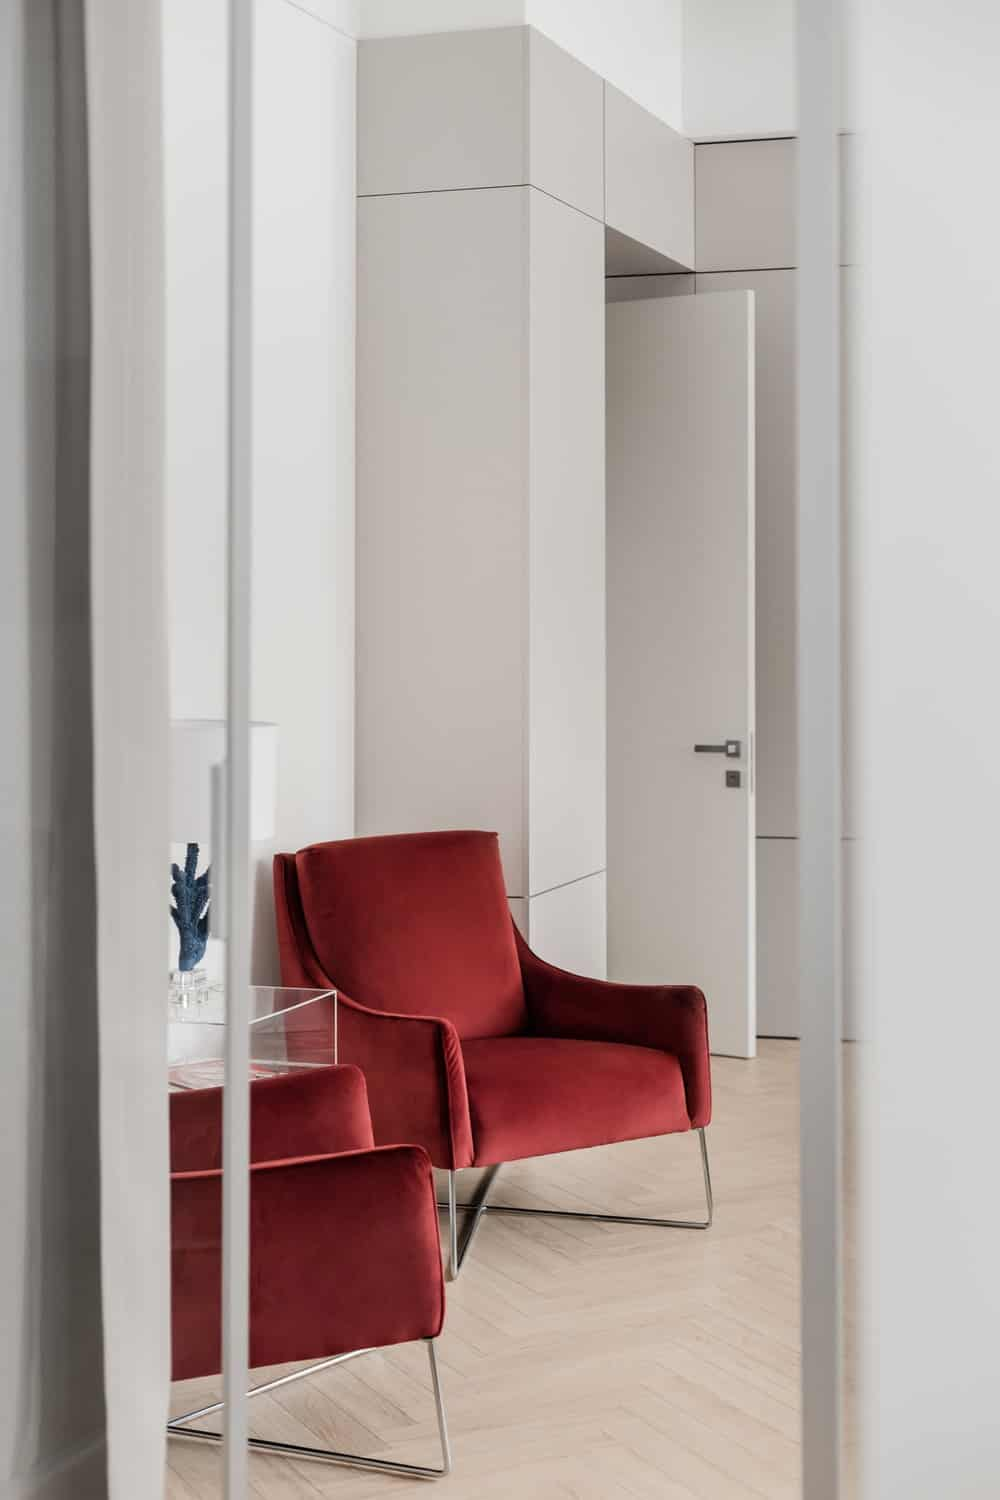 At the side of the office is a wall with a couple of comfortable cushioned chairs.